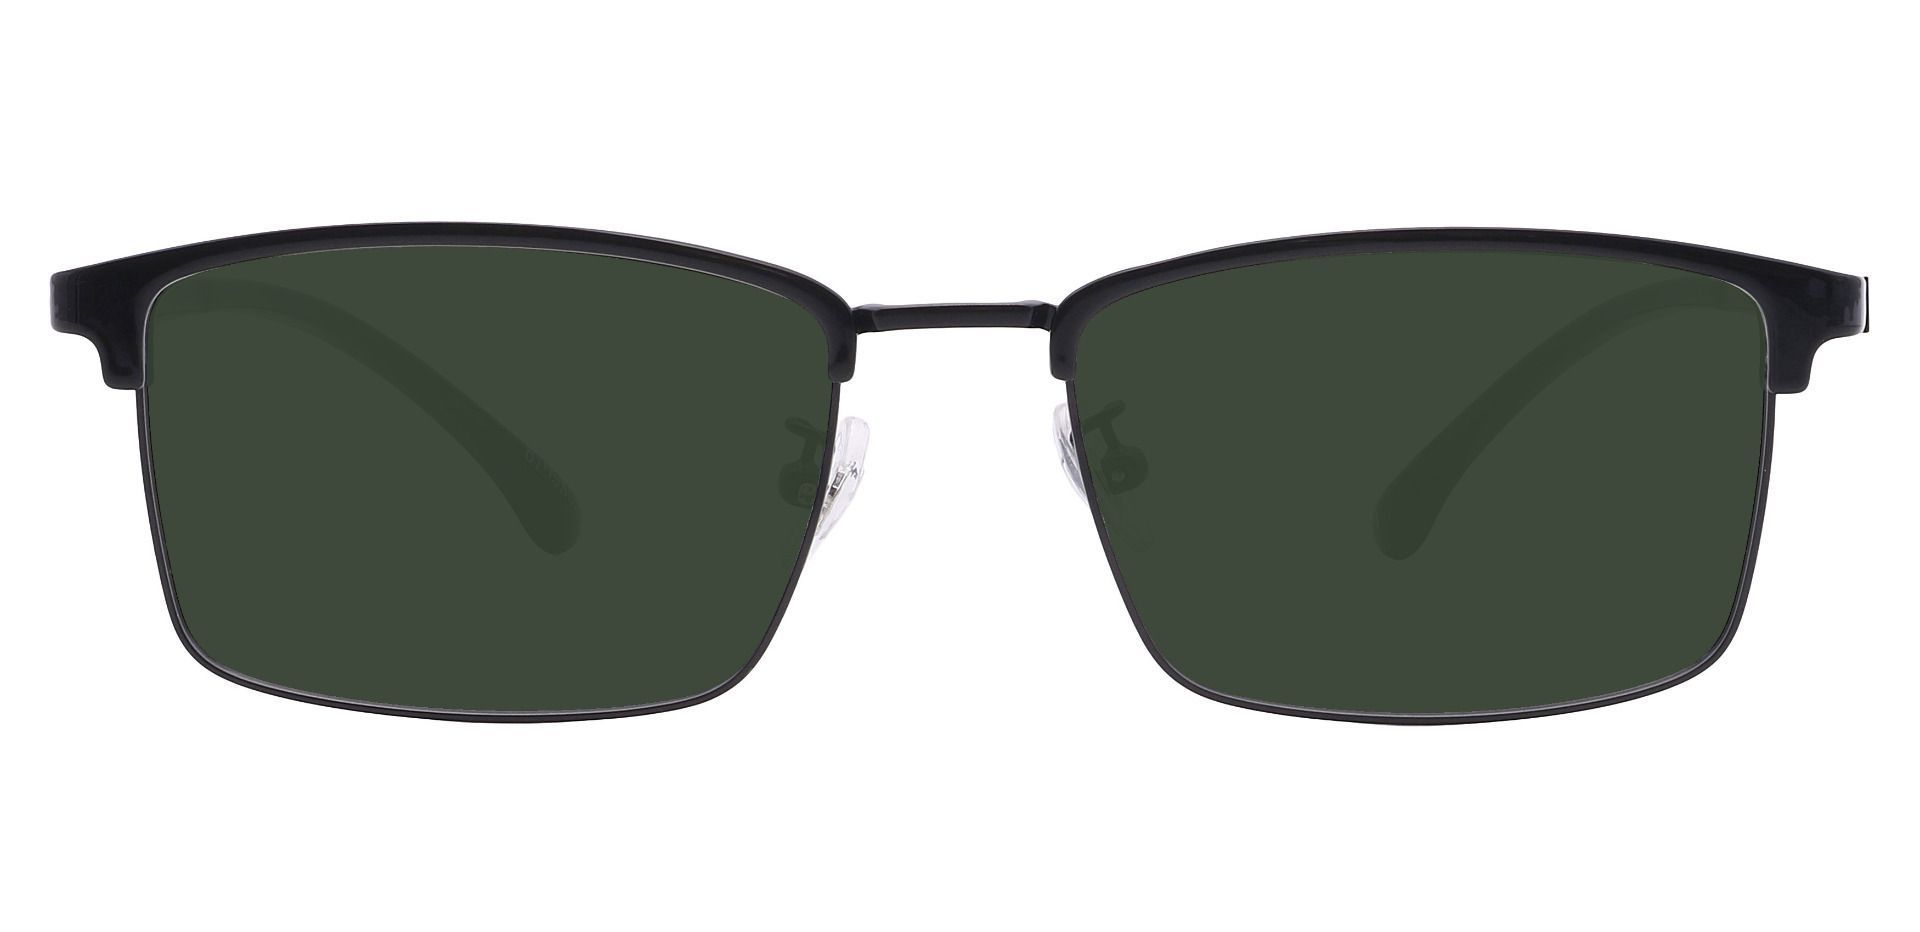 Young Browline Prescription Sunglasses - Black Frame With Green Lenses